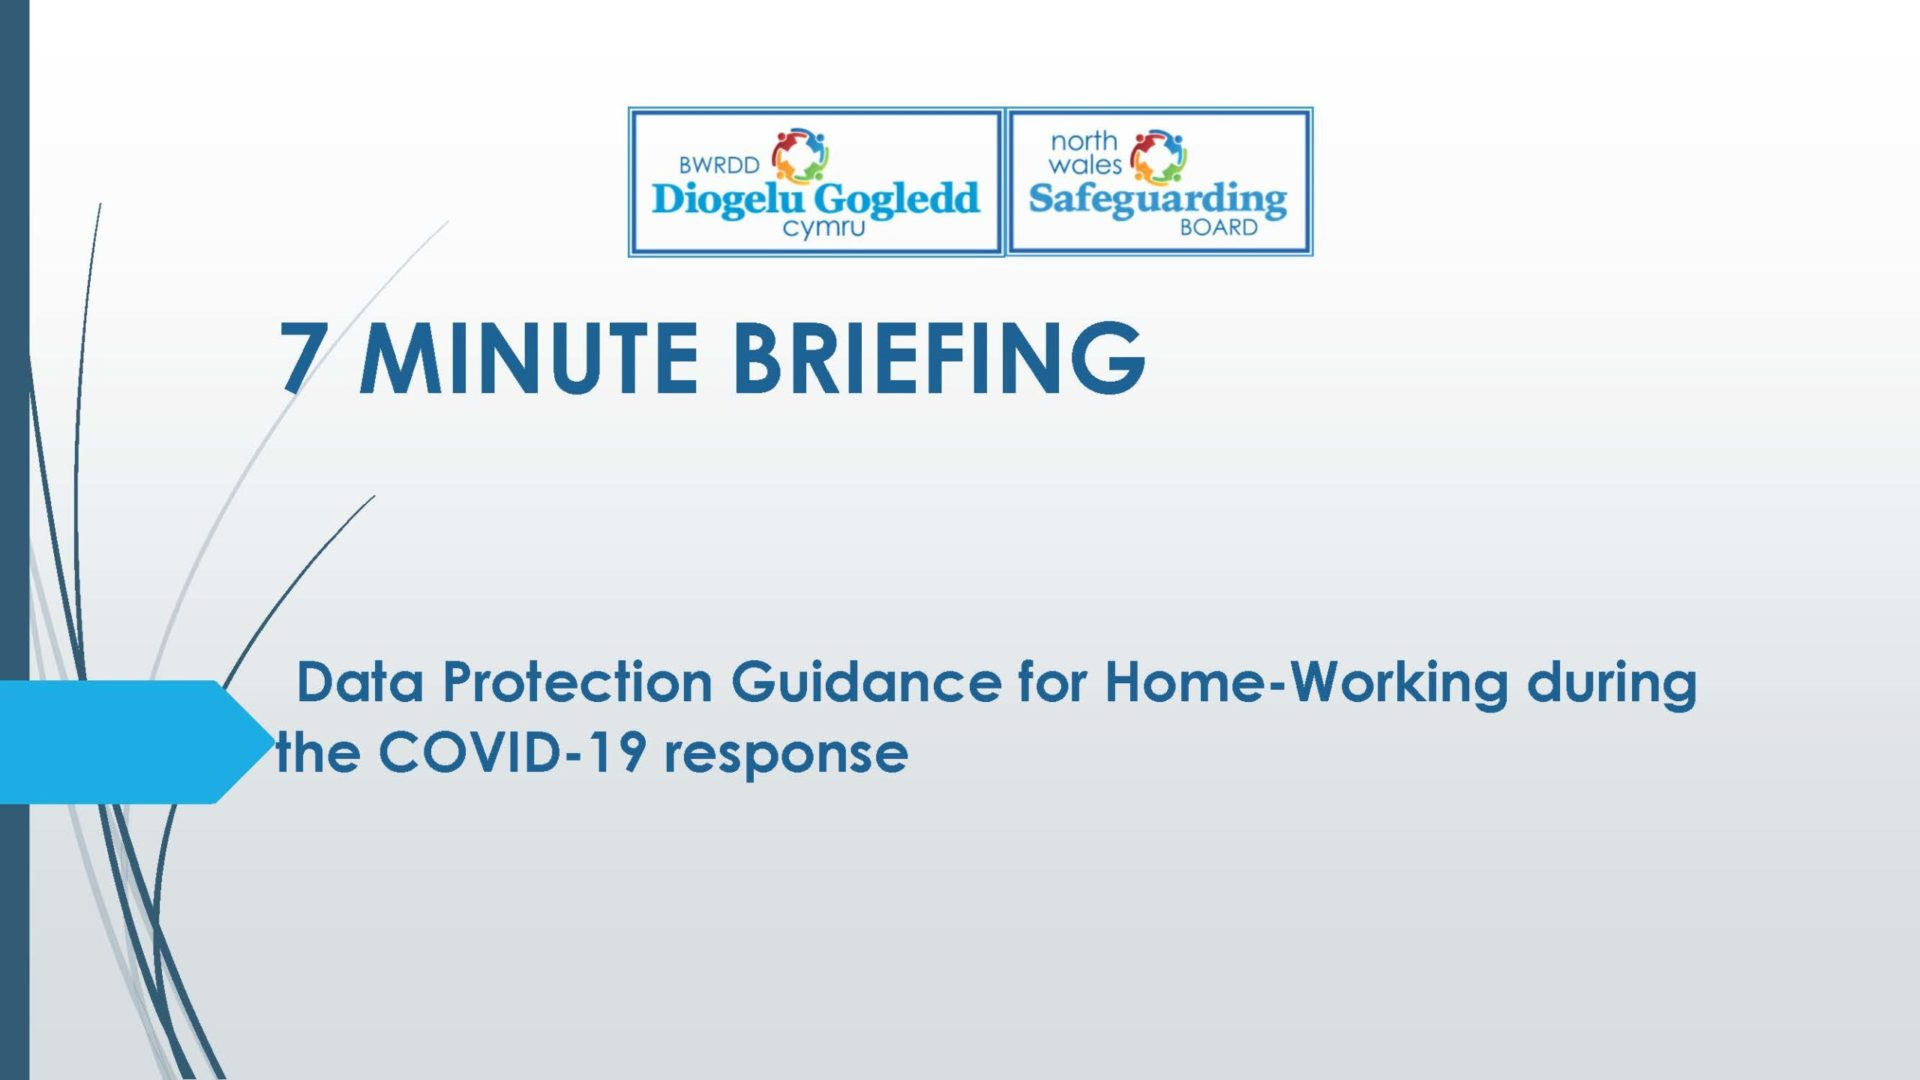 Data Protection Guidance for Home-Working during the COVID-19 respons